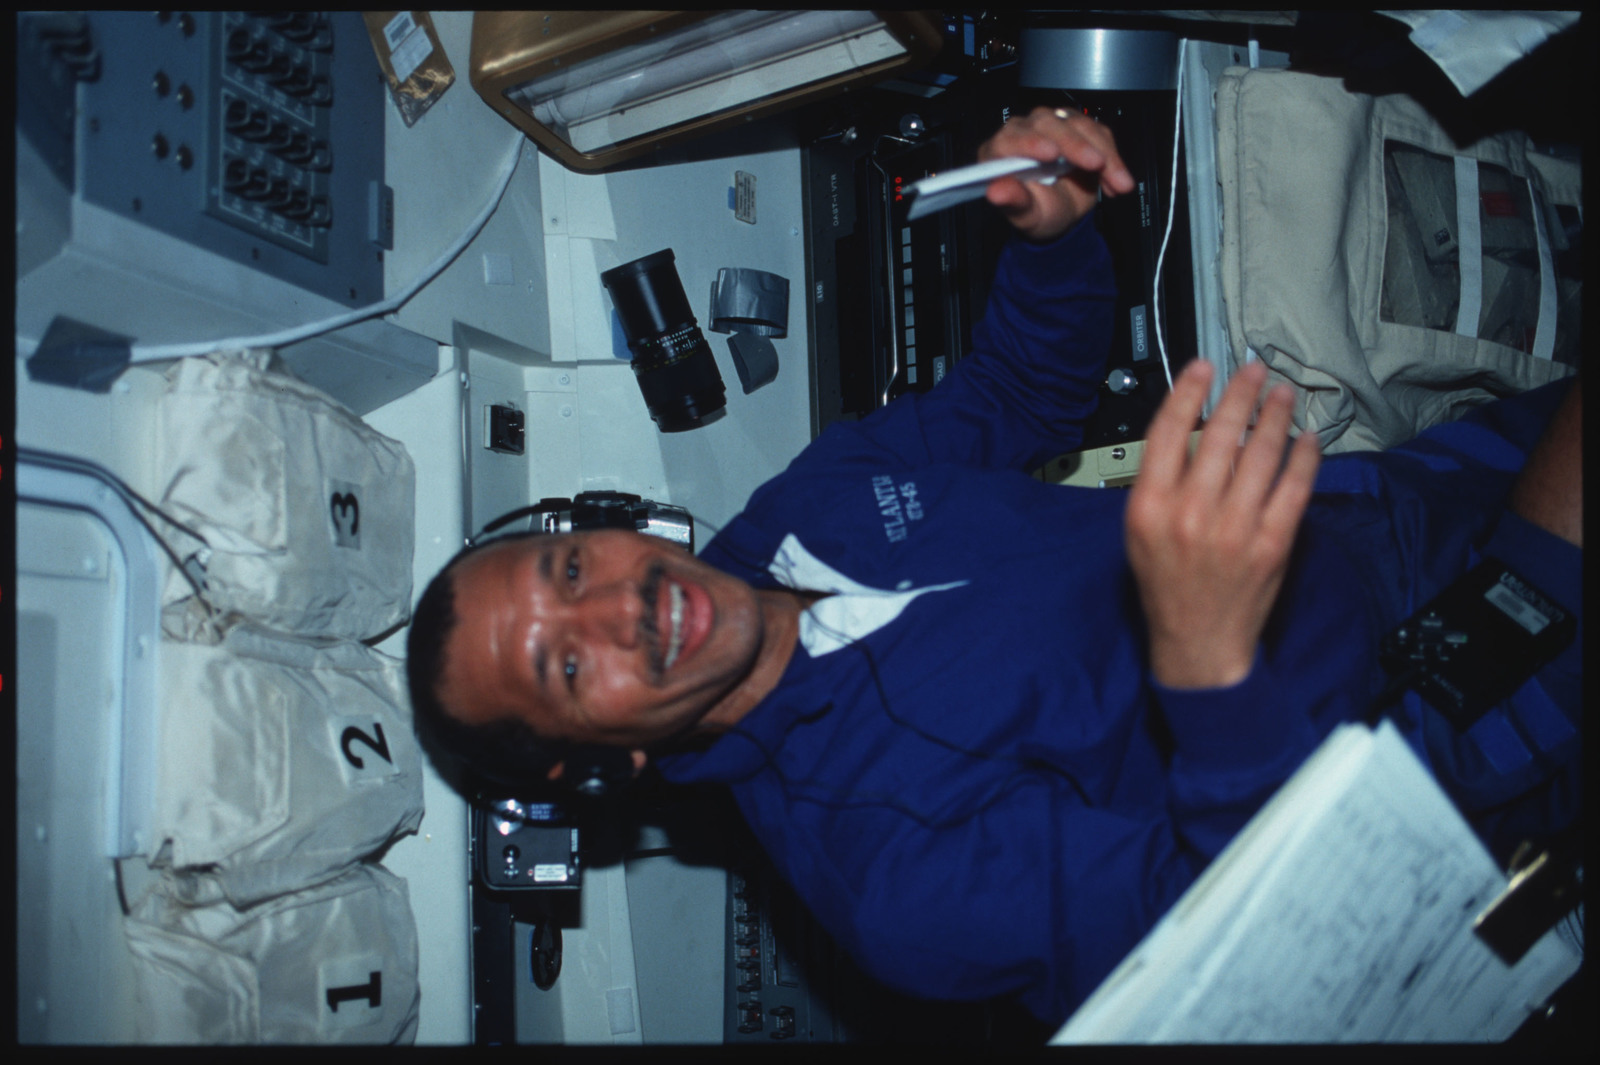 S45-13-036 - STS-045 - STS-45 crewmembers engage in various activities